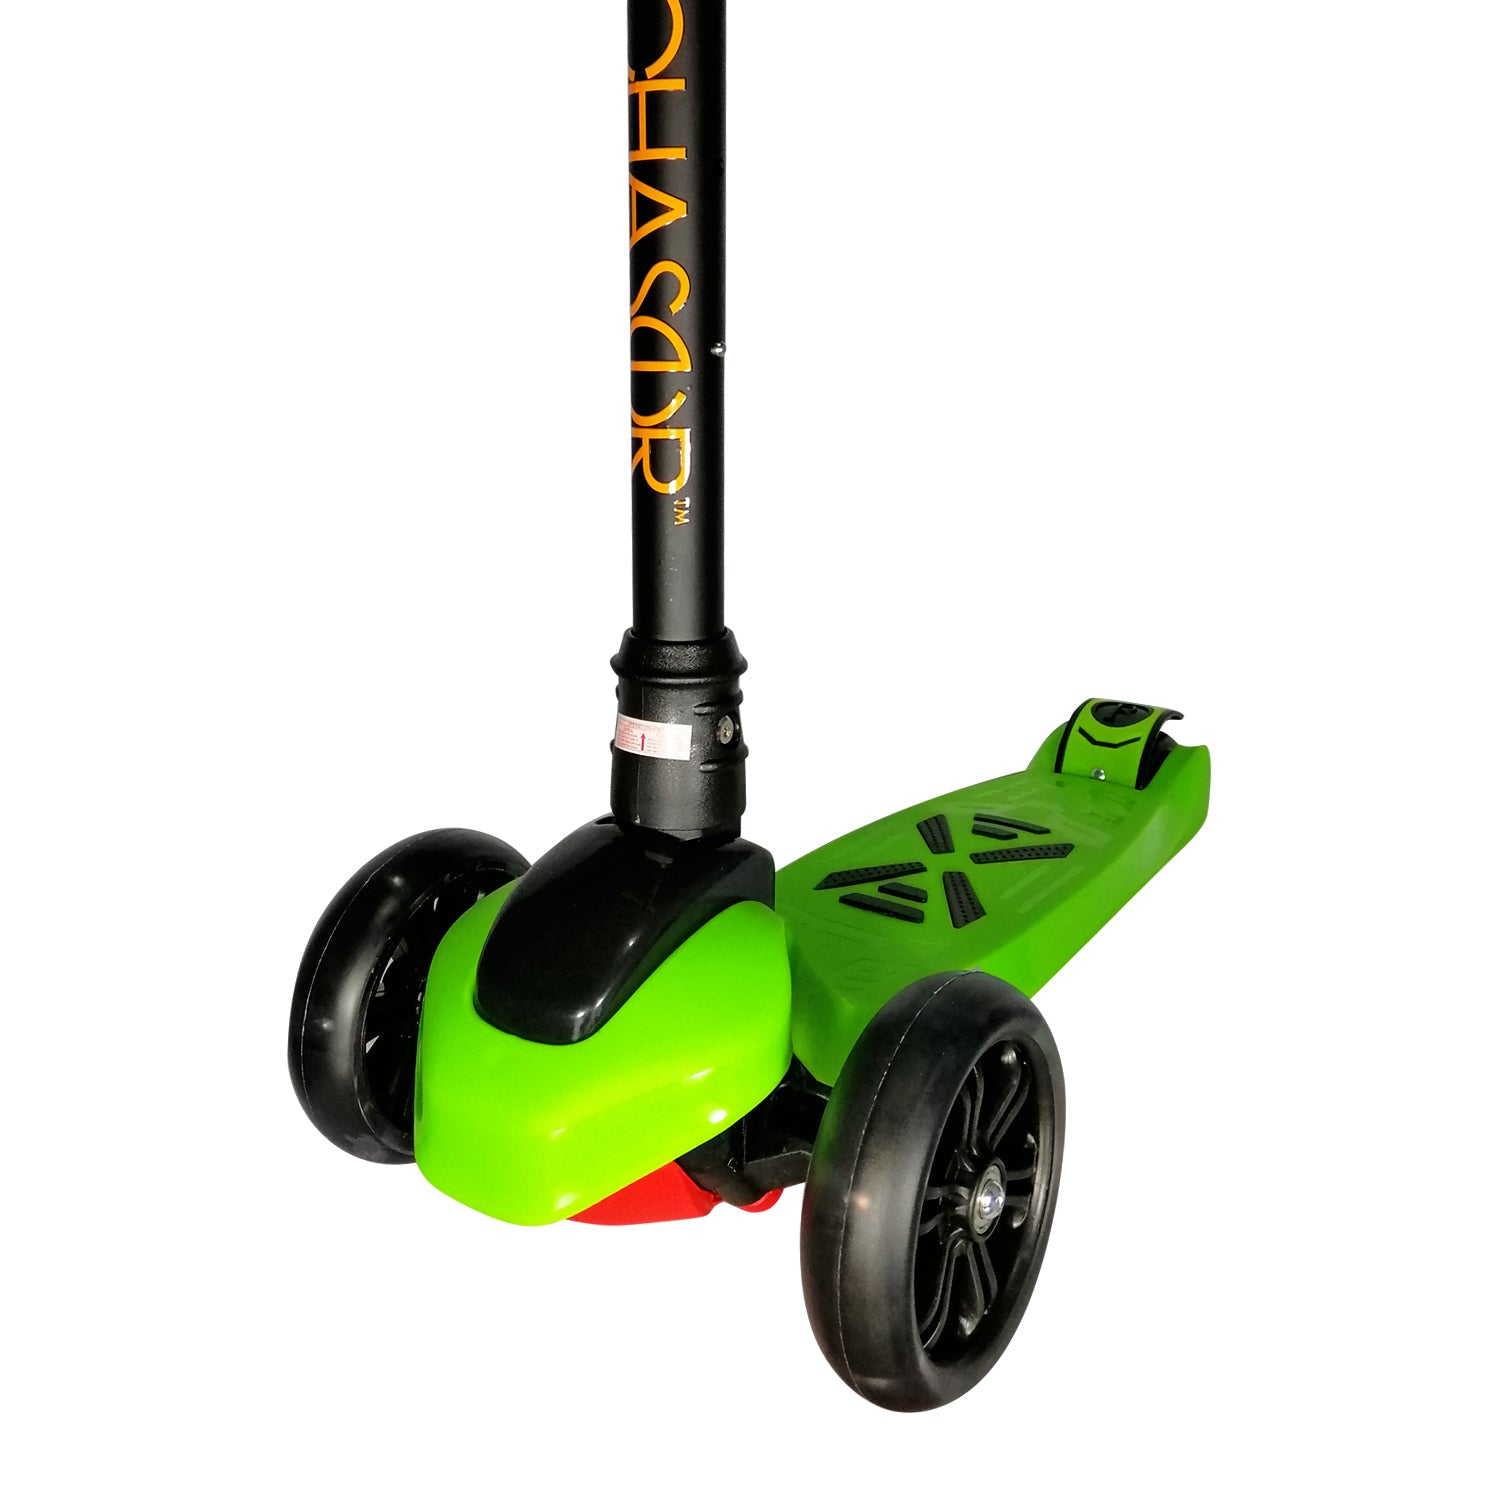 Chaser 6+ Folding Kids Kick Scooter-Green